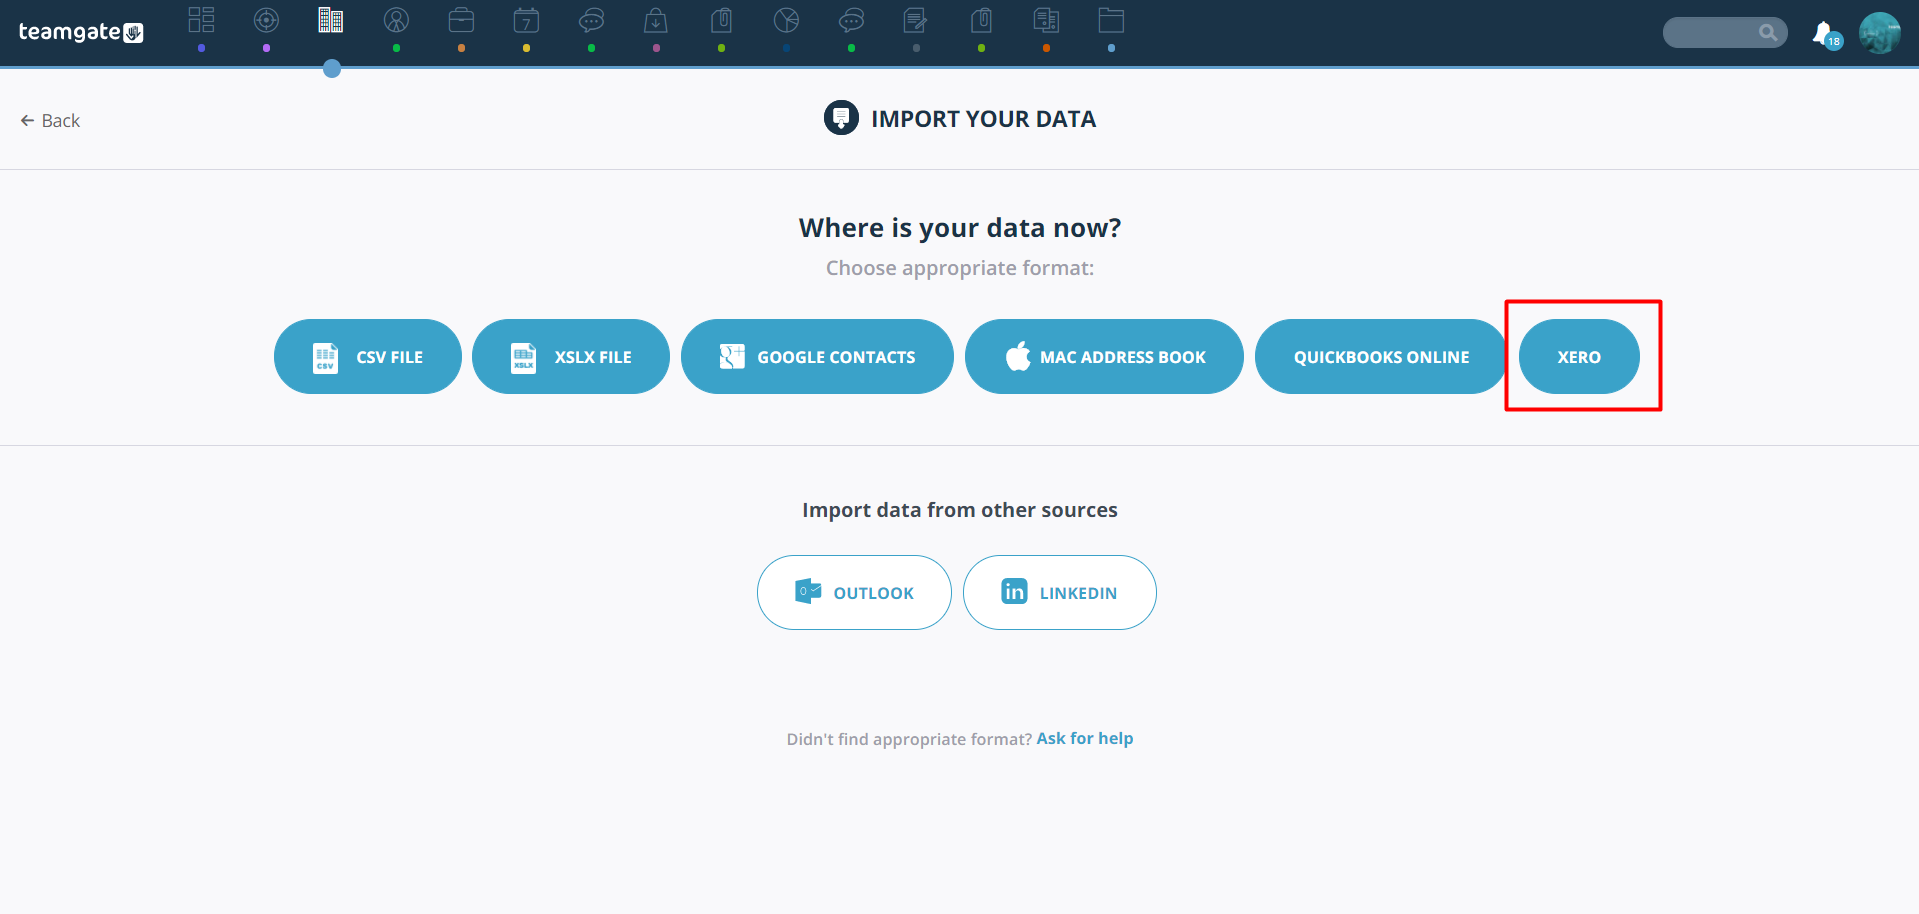 import-your-data-xero-teamgate-integration.png